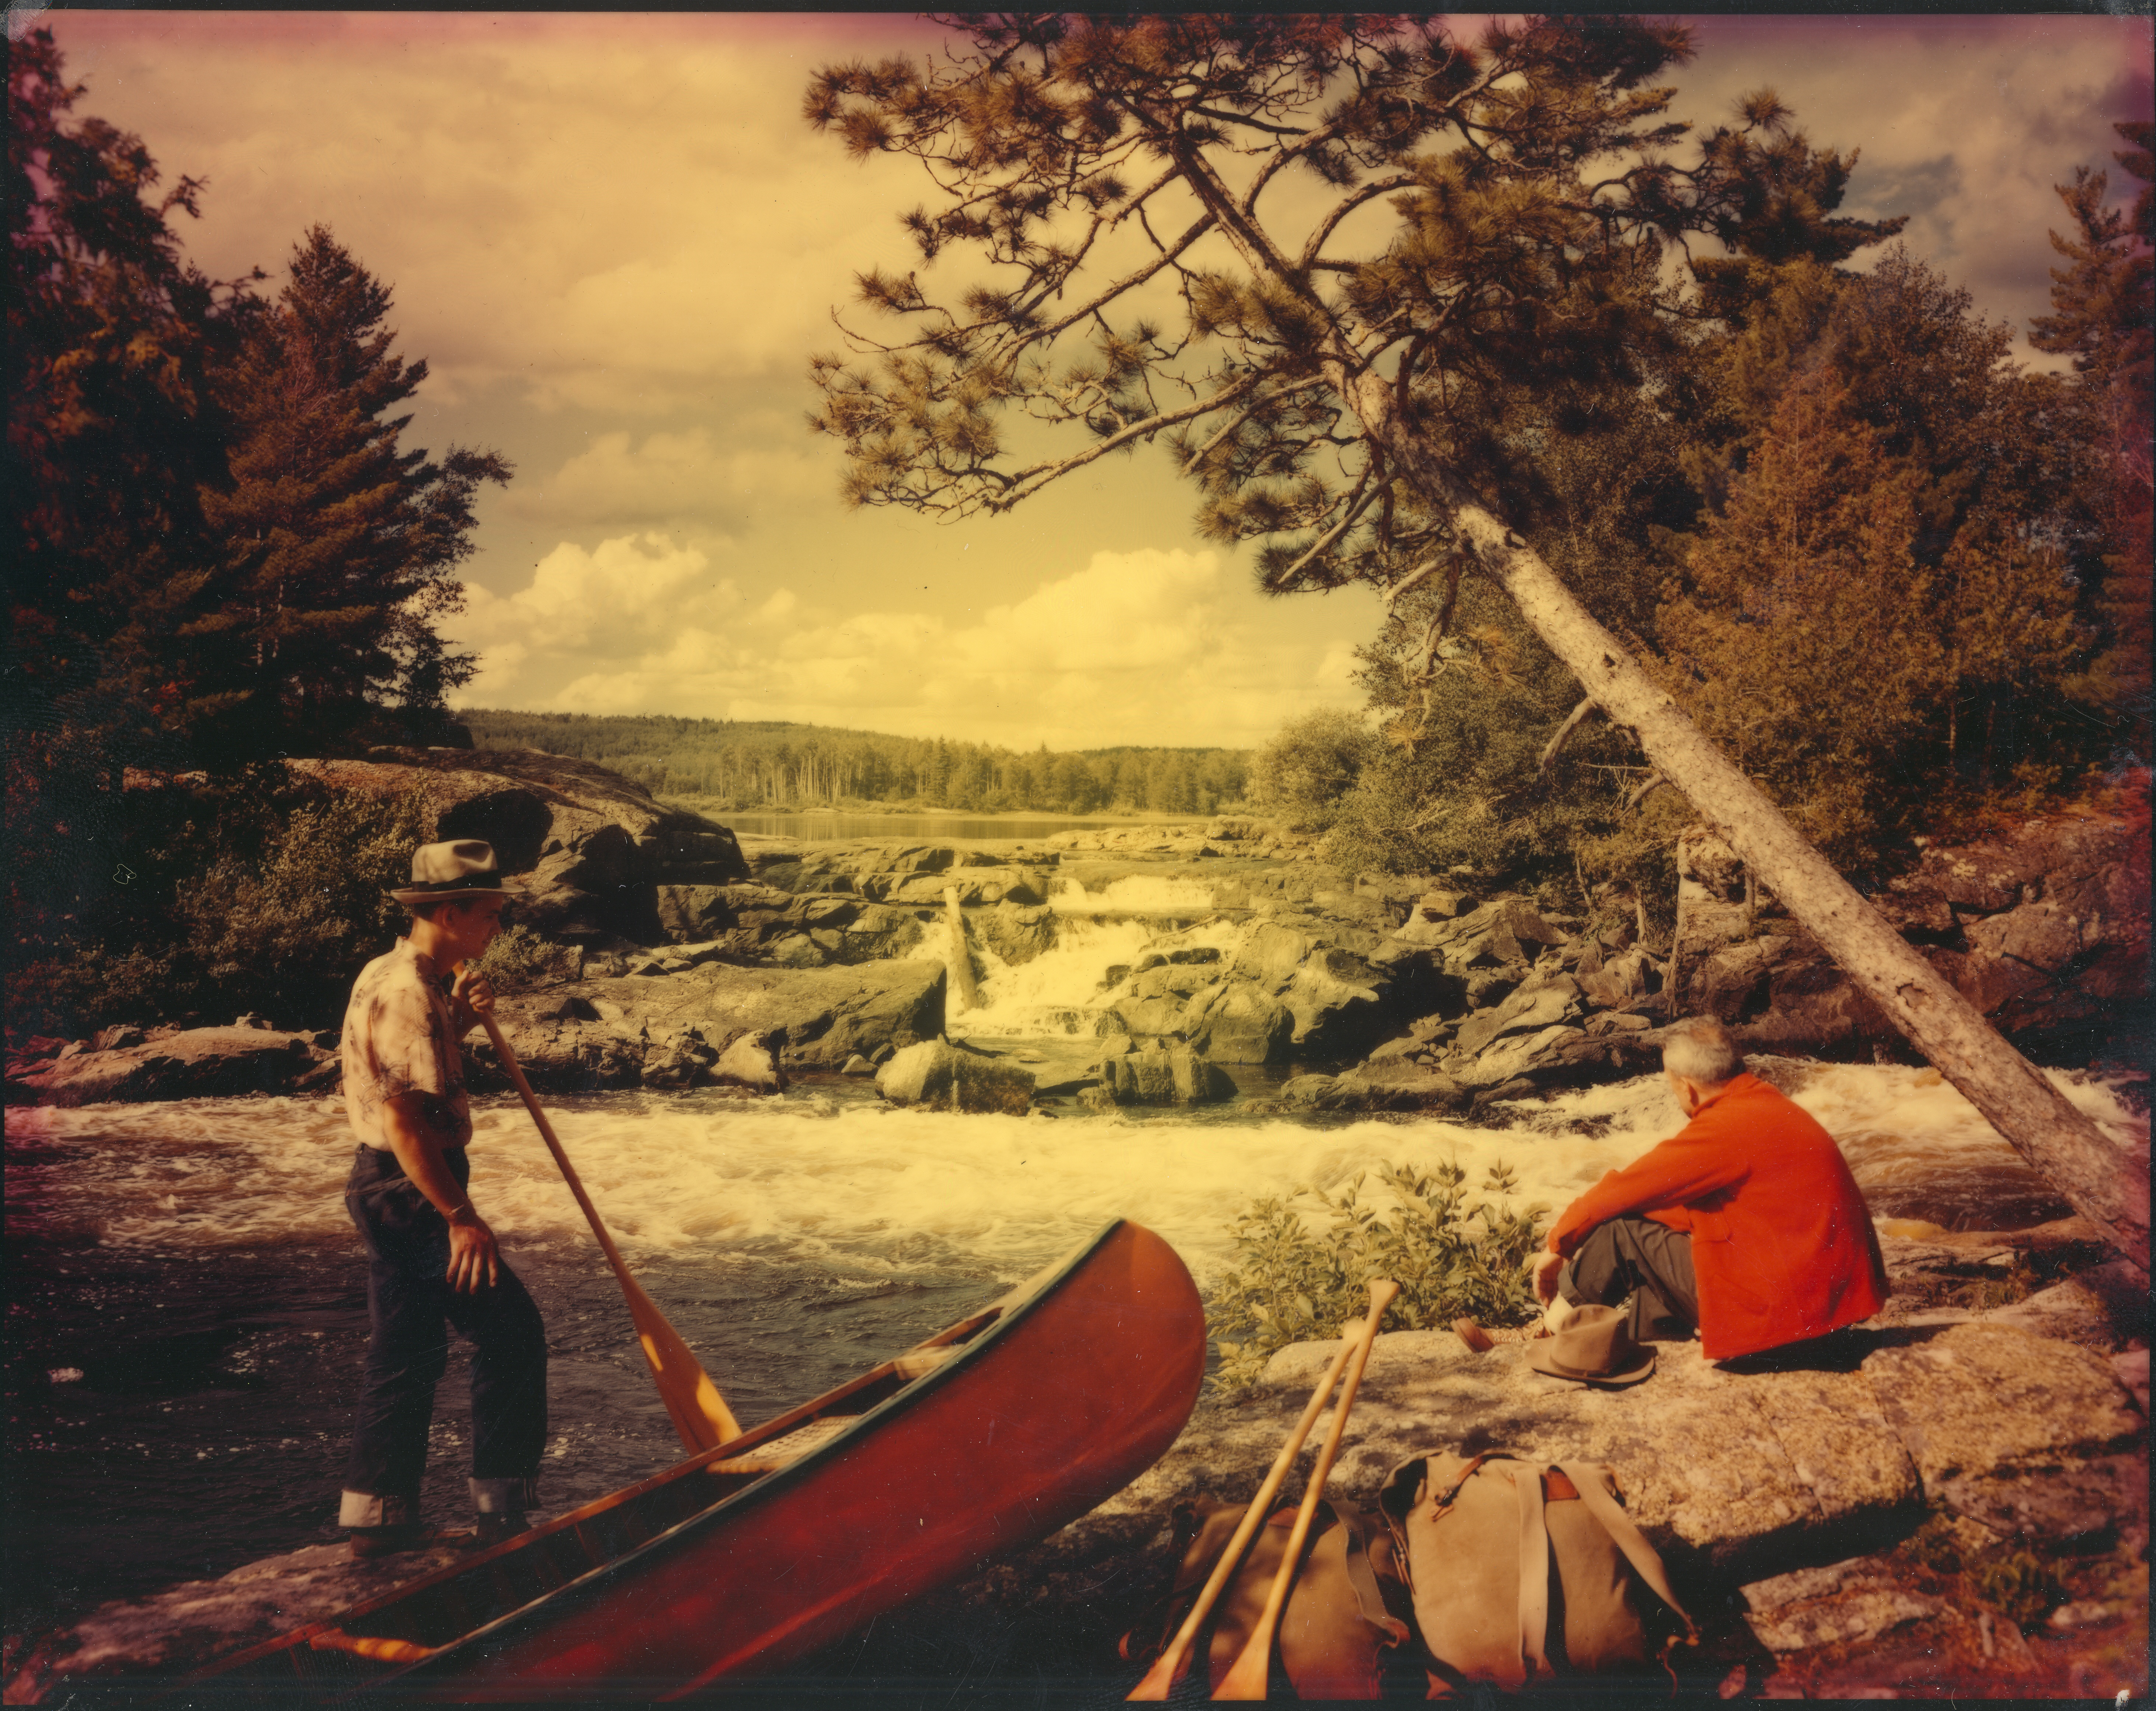 Ready_to_portage_around_Lower_Basswood_Falls,_07_1961_(5188003652)